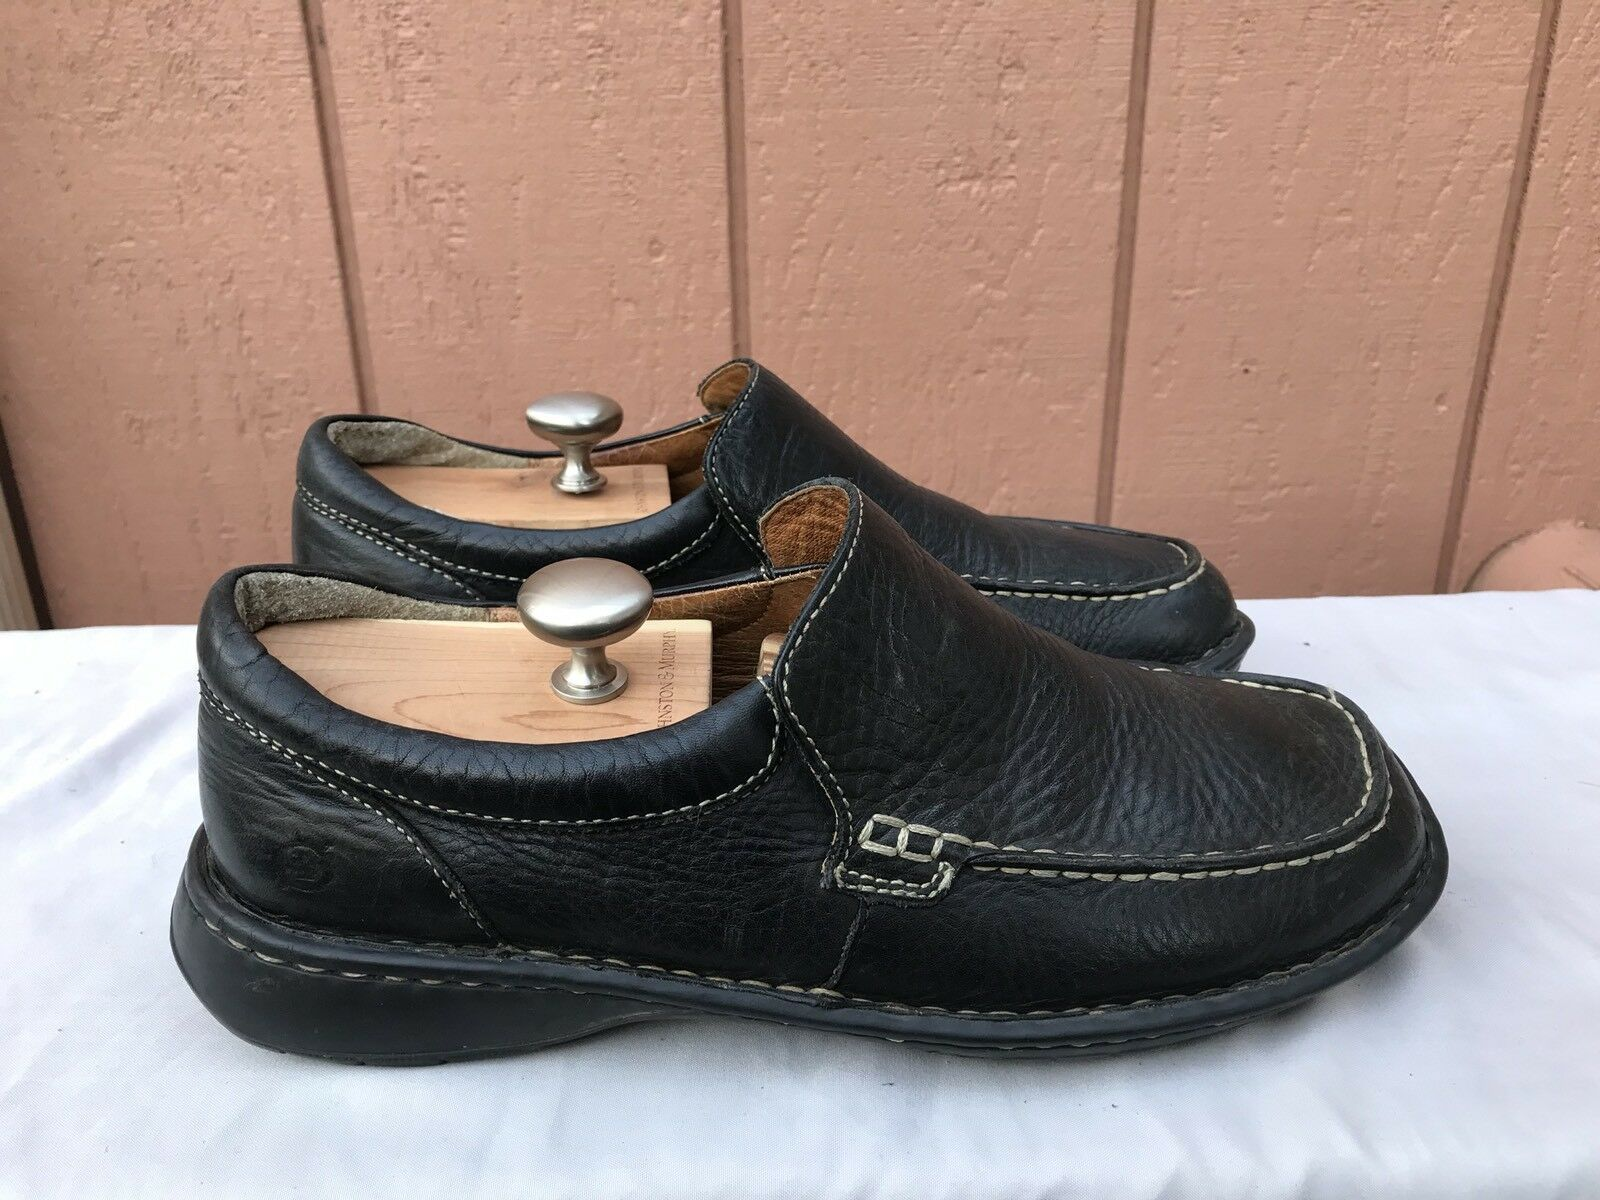 RARE BORN Men's Black Leather Slip On Loafers Comfort Shoes Moc Size US 10.5 A1